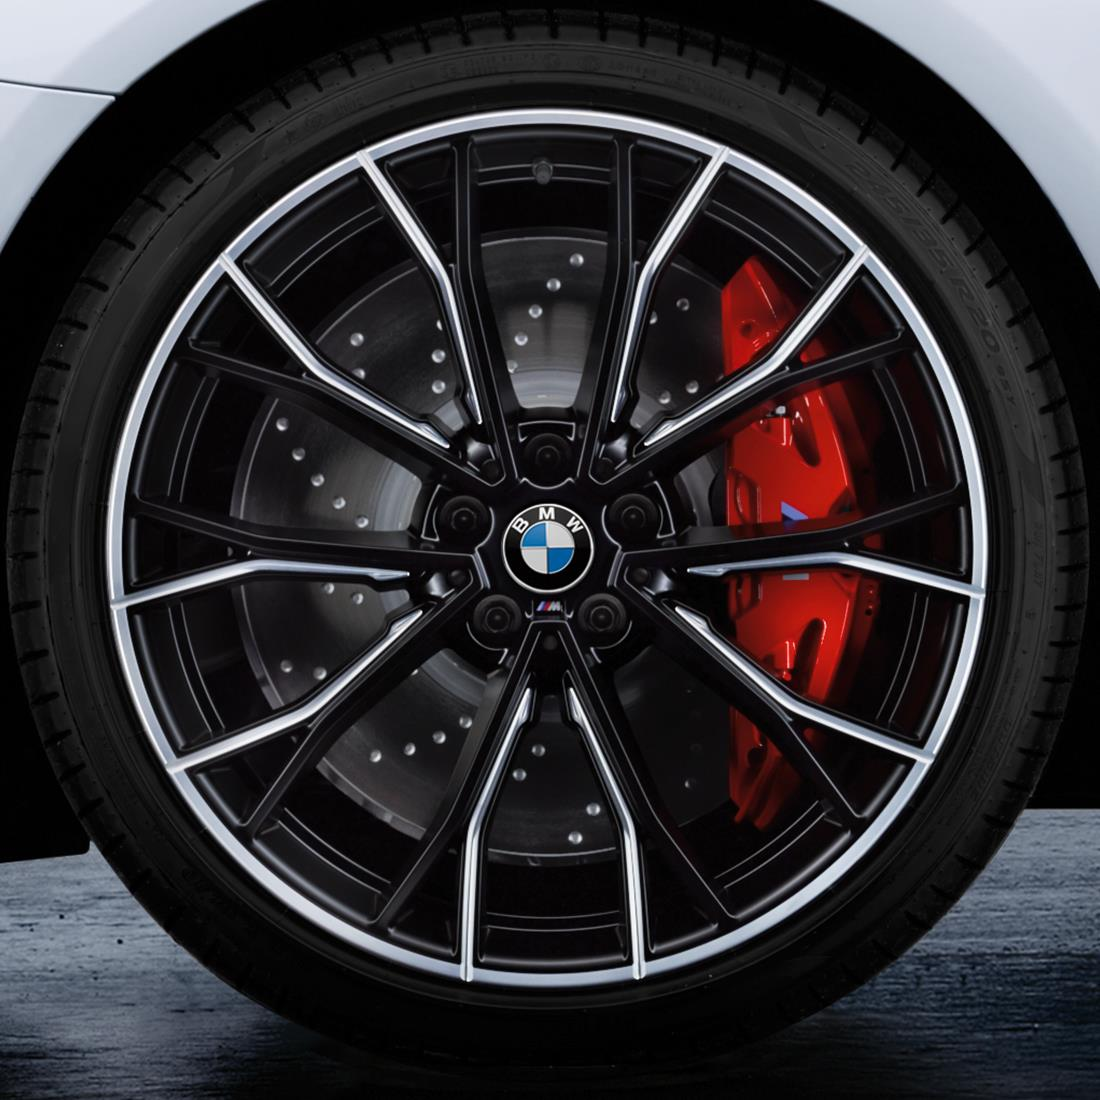 BMW 20-Inch M Performance Double-spoke 669M Complete Performance Wheel and Tire Set - Bi-color Jet Black Matte and Gloss-Milled